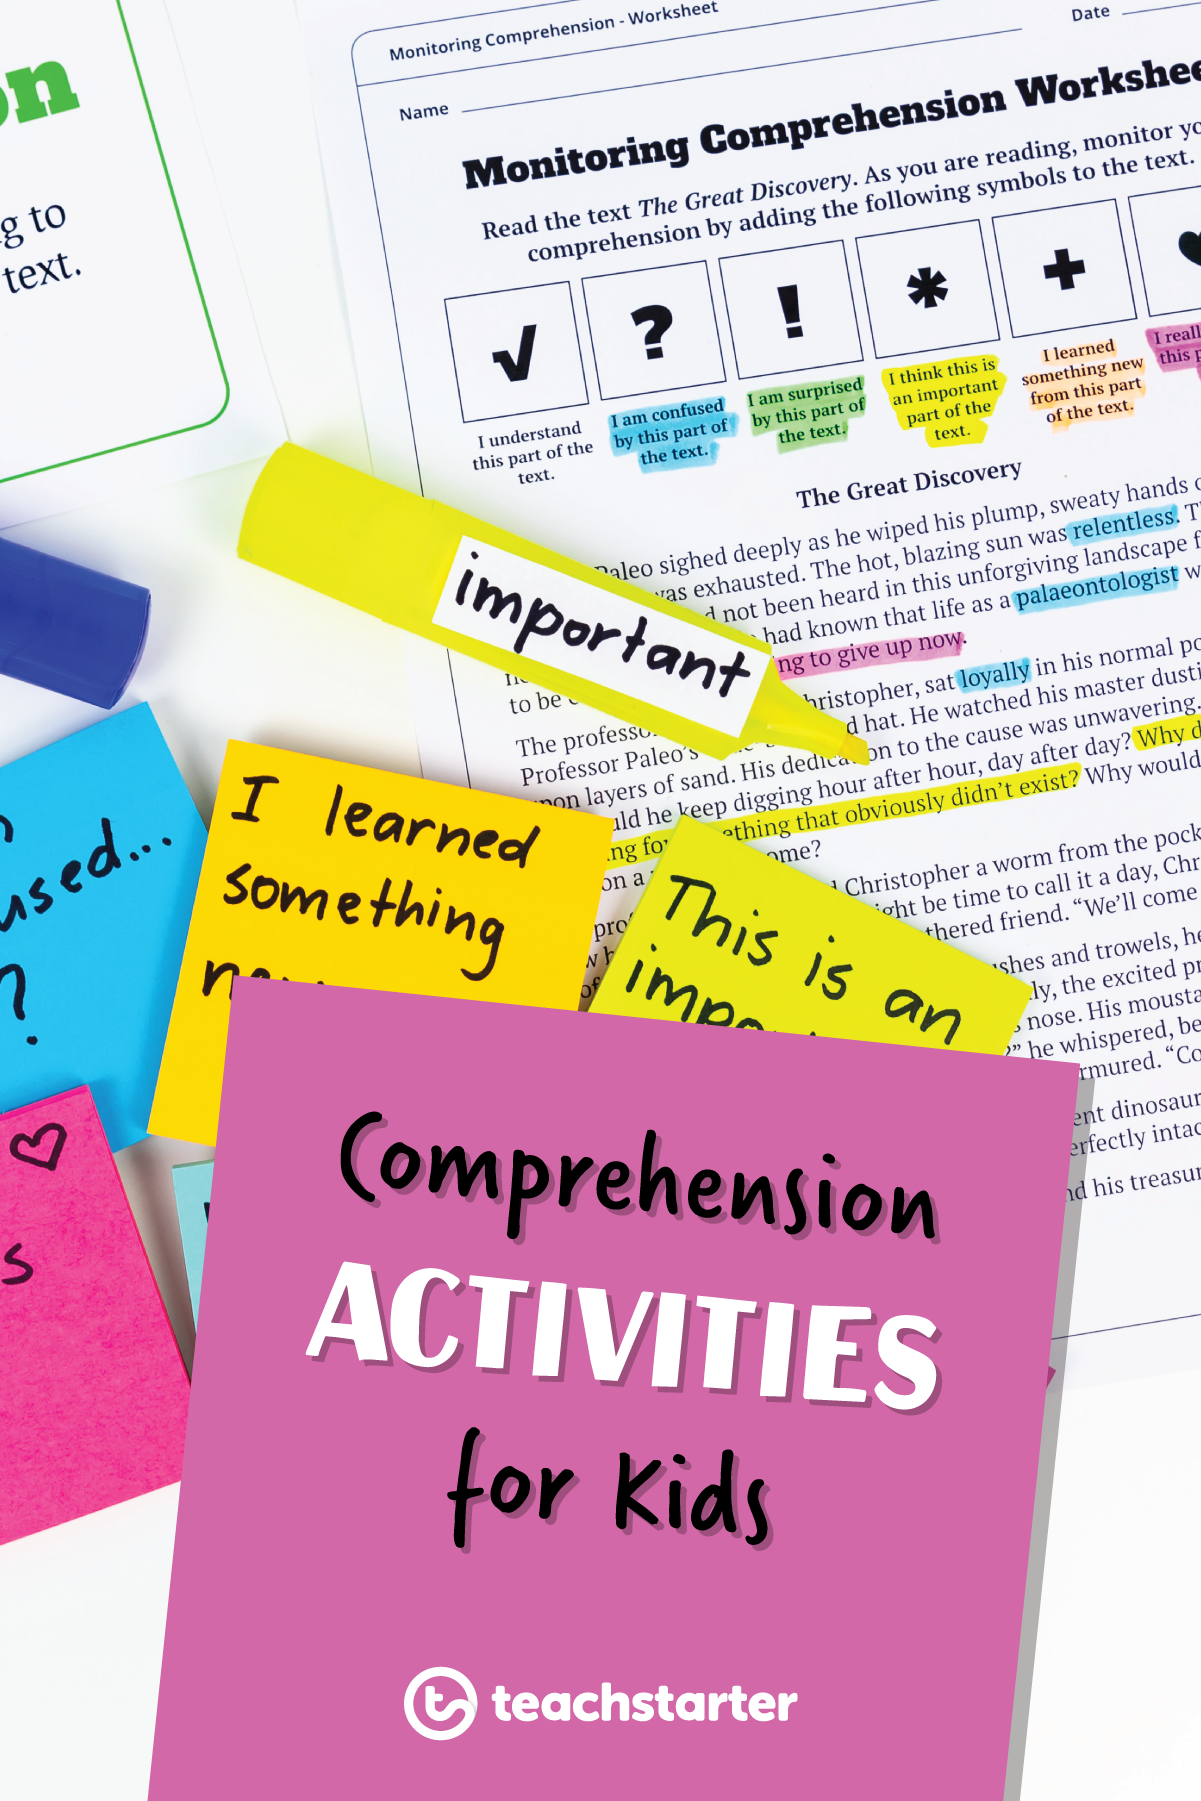 Monitoring Comprehension Worksheet Teaching Resource With